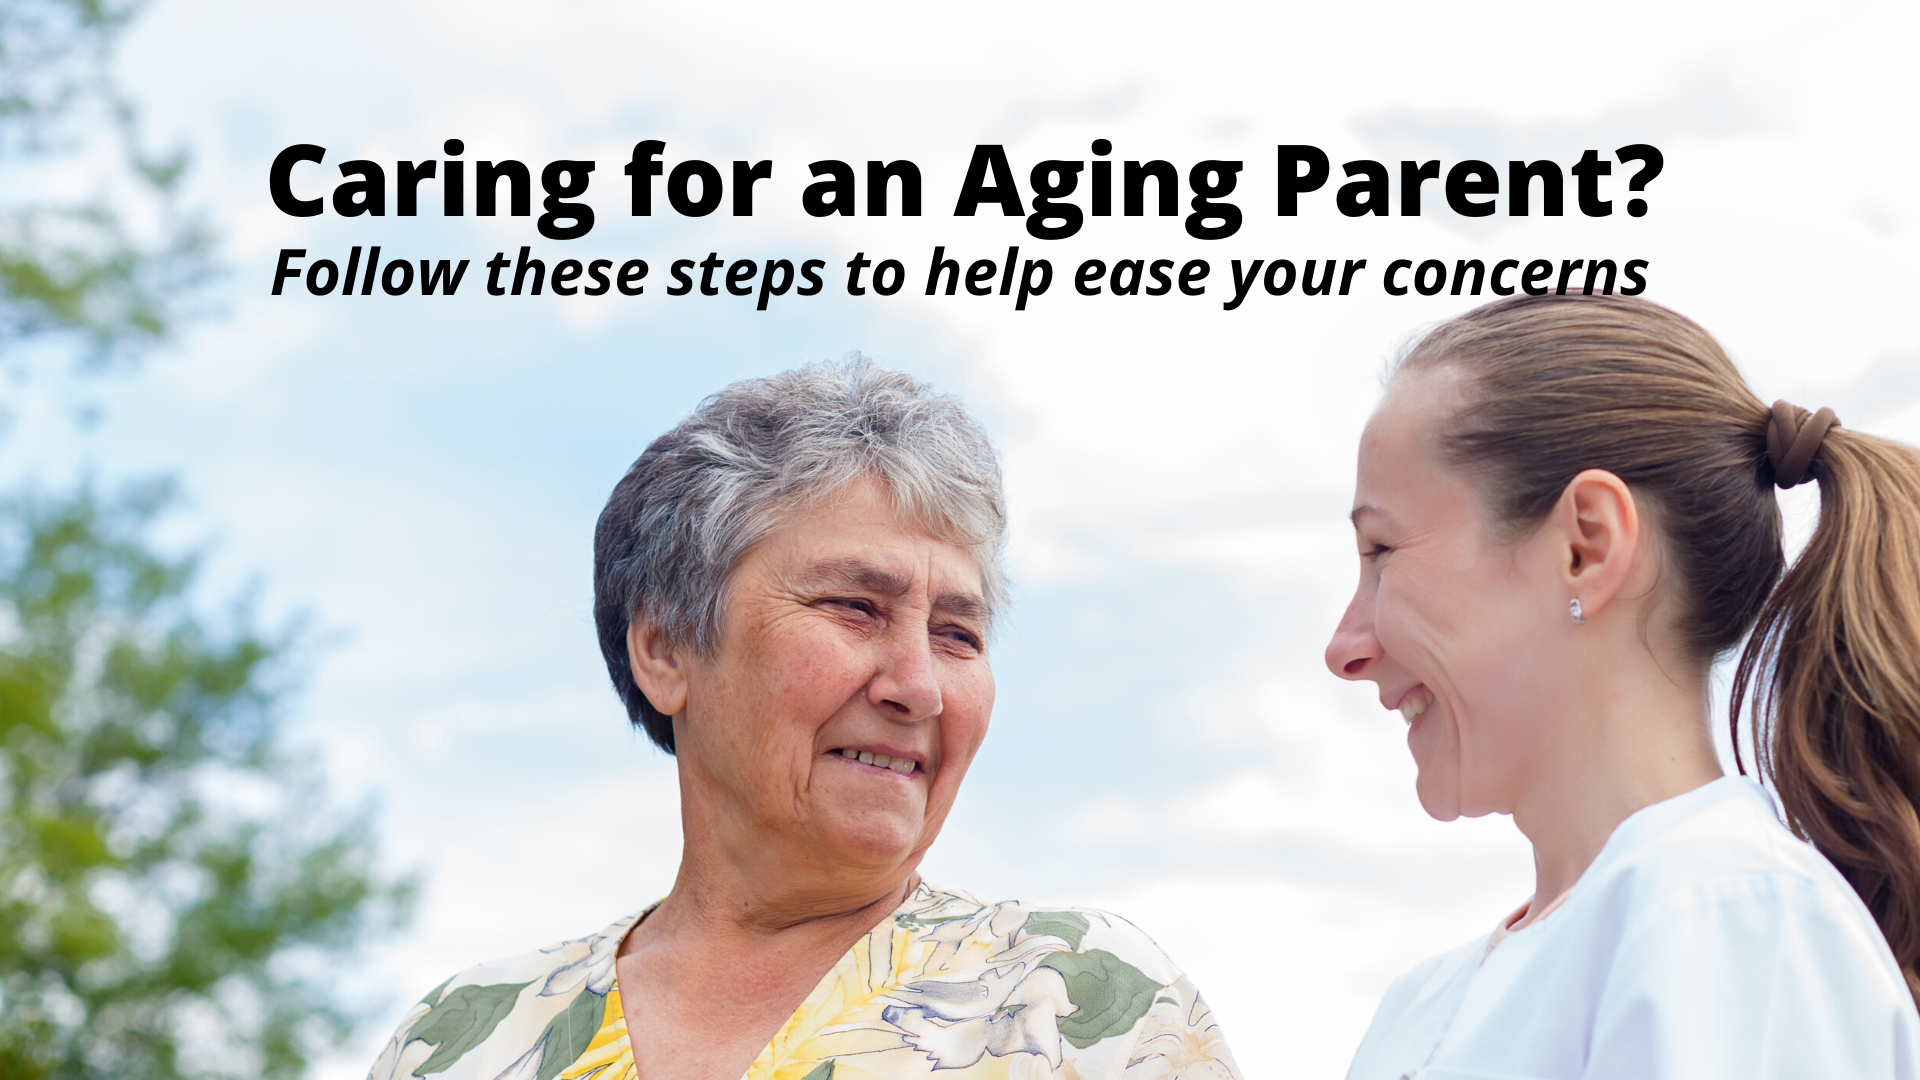 5 Next Steps When You Are Concerned About an Aging Parent